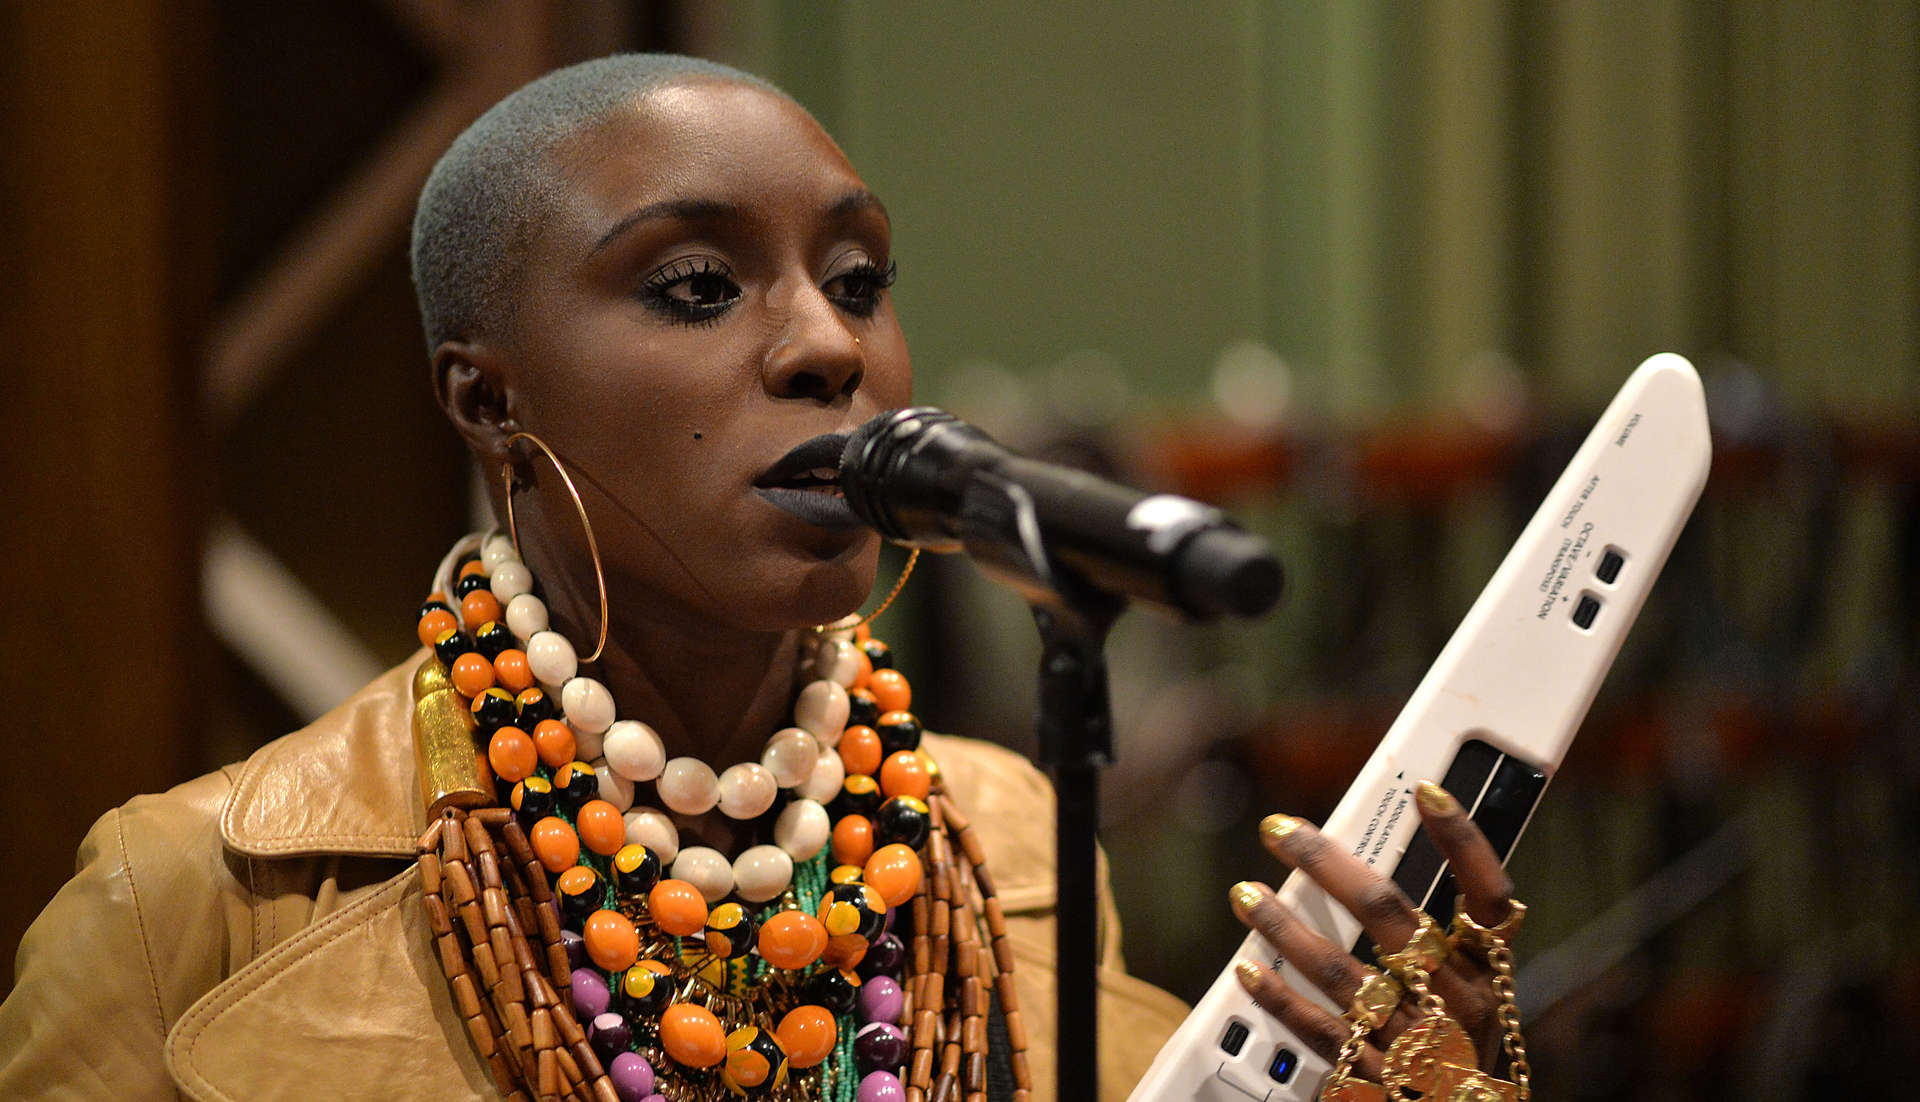 Laura Mvula talked to Michael Berkeley about early experiences with stage fright and the move from classical music student to chart-topping singer.